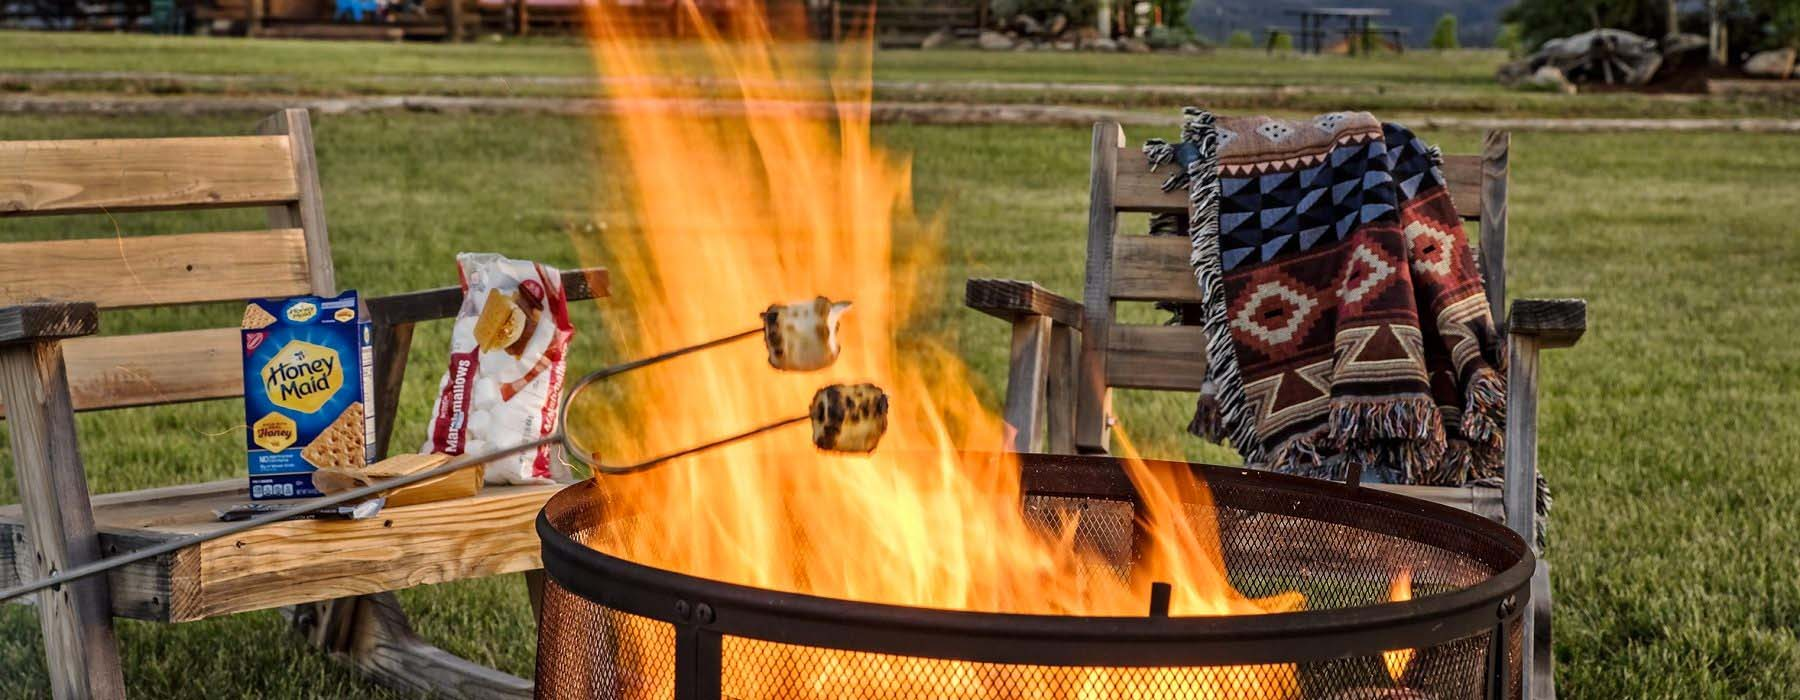 Roasting s'mores over firepit at Triangle C Cabins